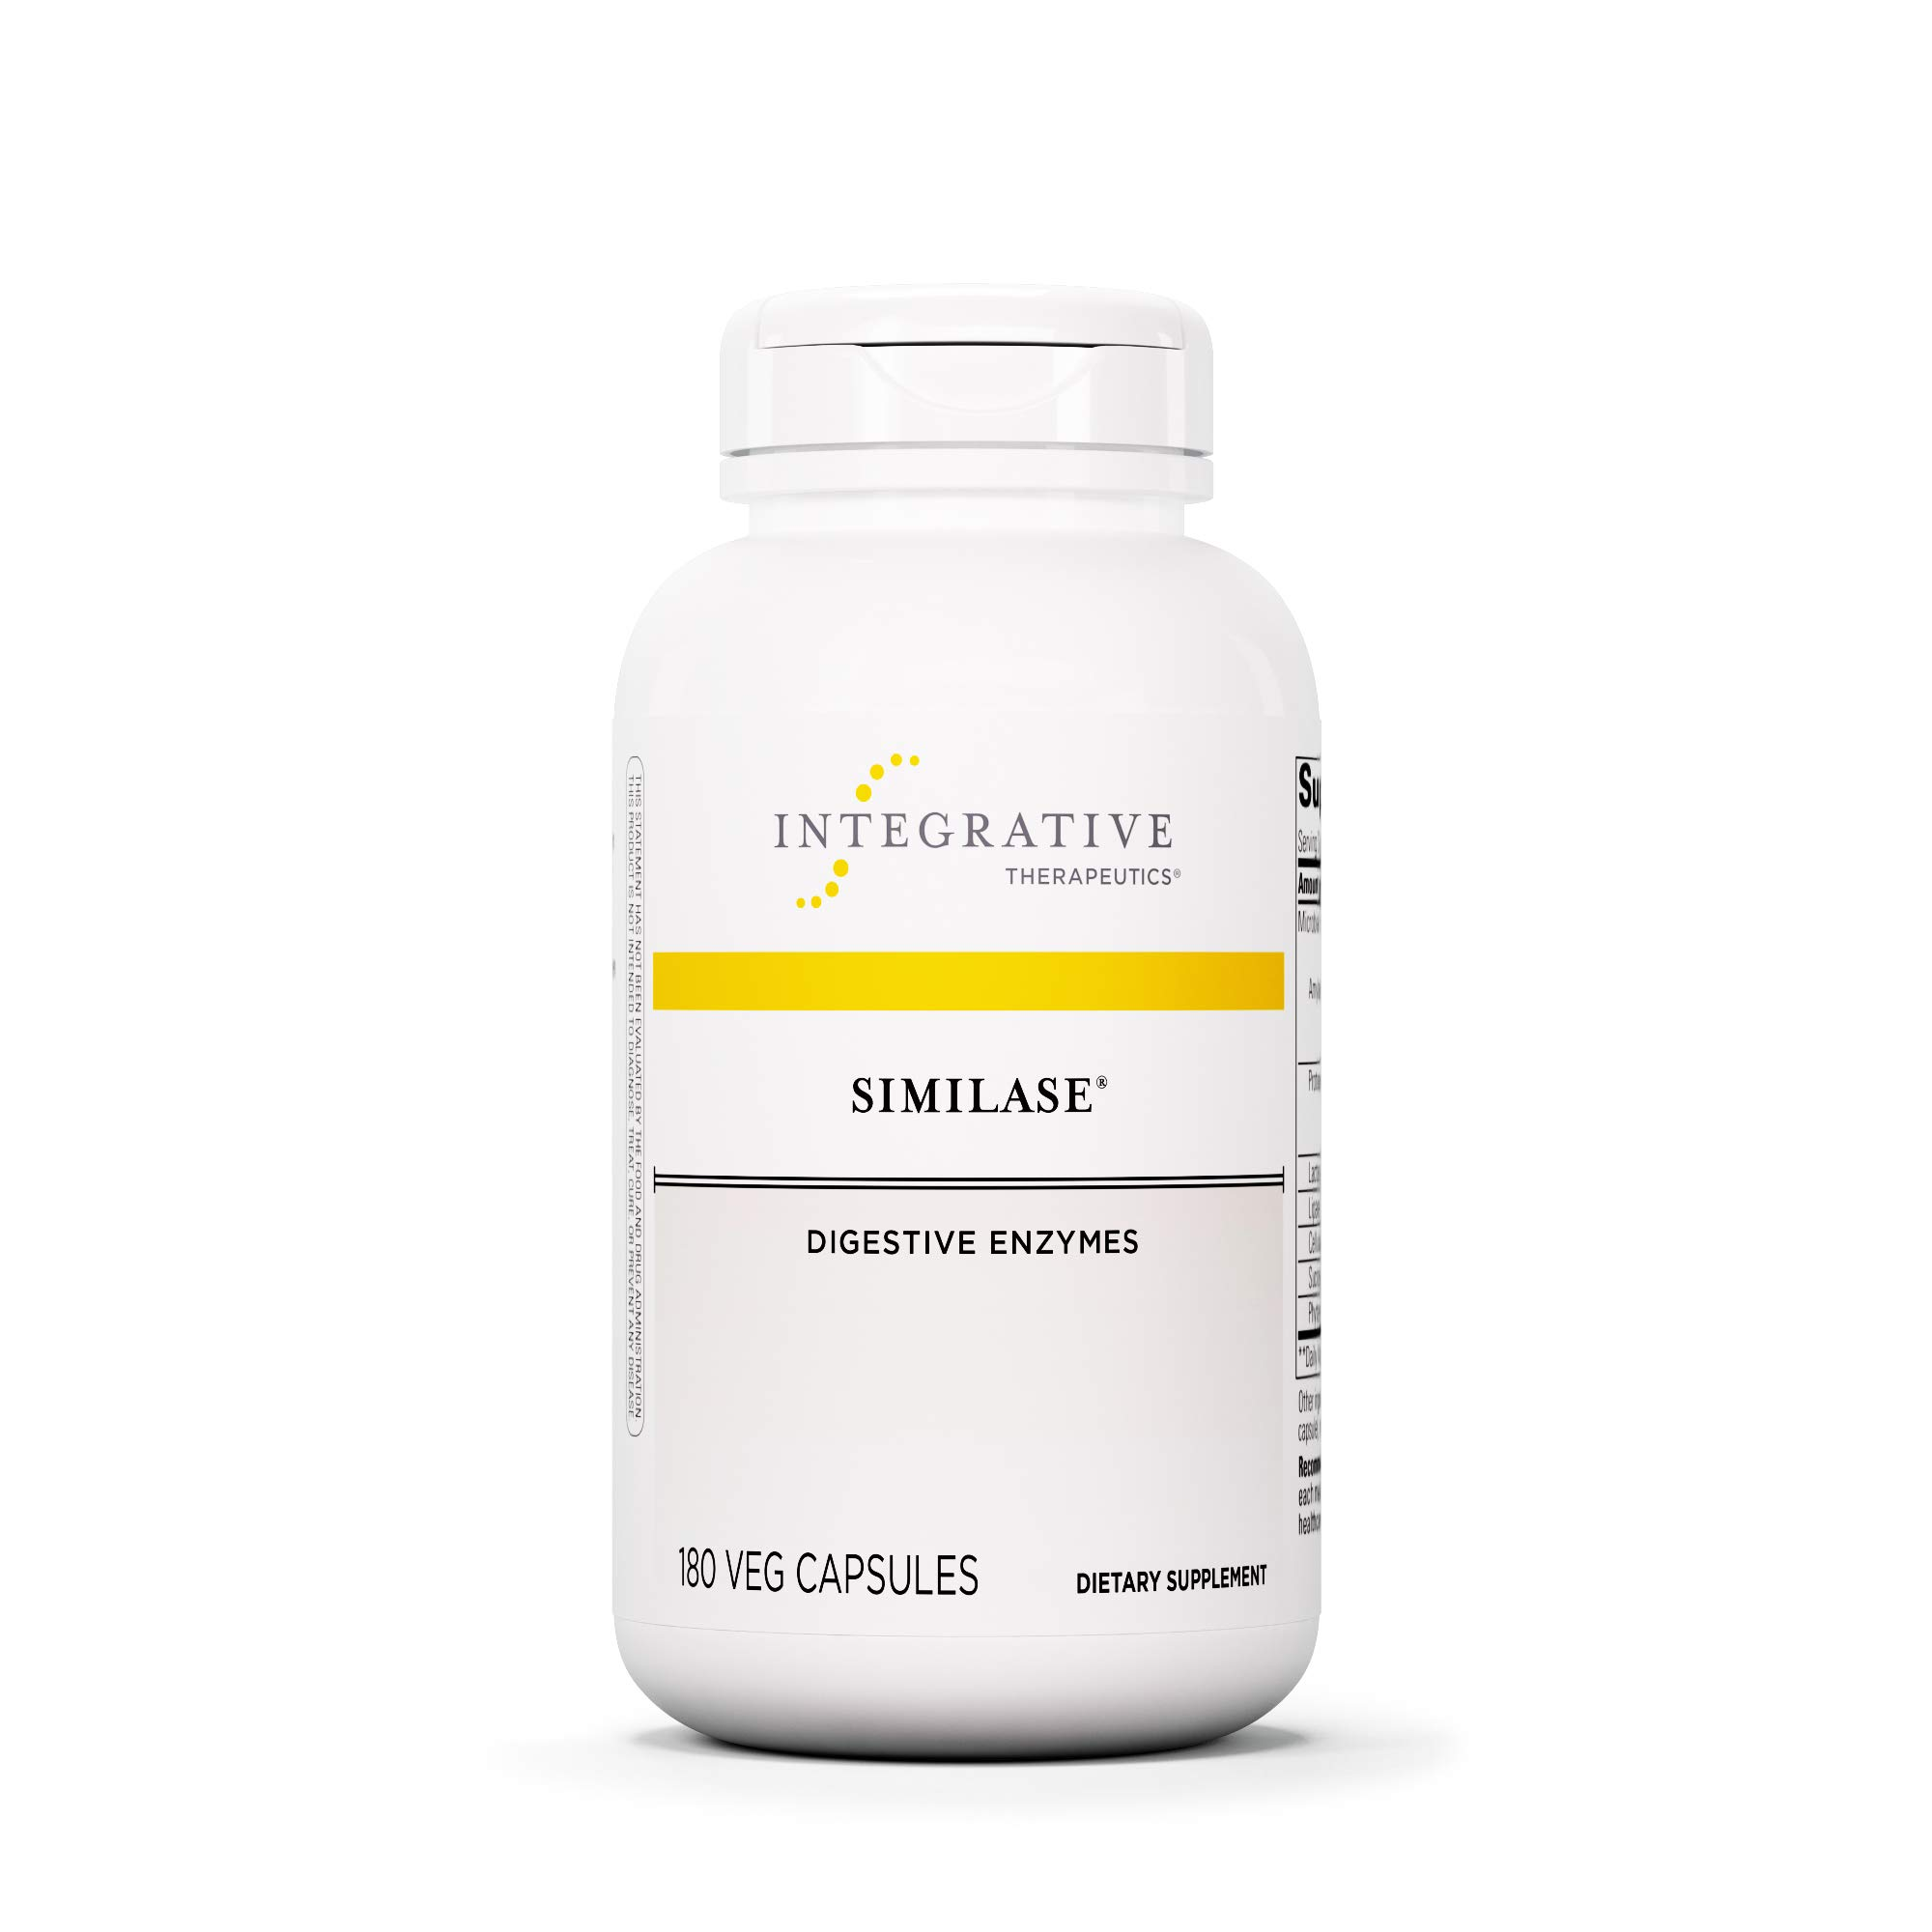 Integrative Therapeutics - Similase - Physician Developed Digestive Enzymes for Women and Men - Relieves Occasional Gas and Bloating - Vegan - 180 Vegetable Capsules by Integrative Therapeutics